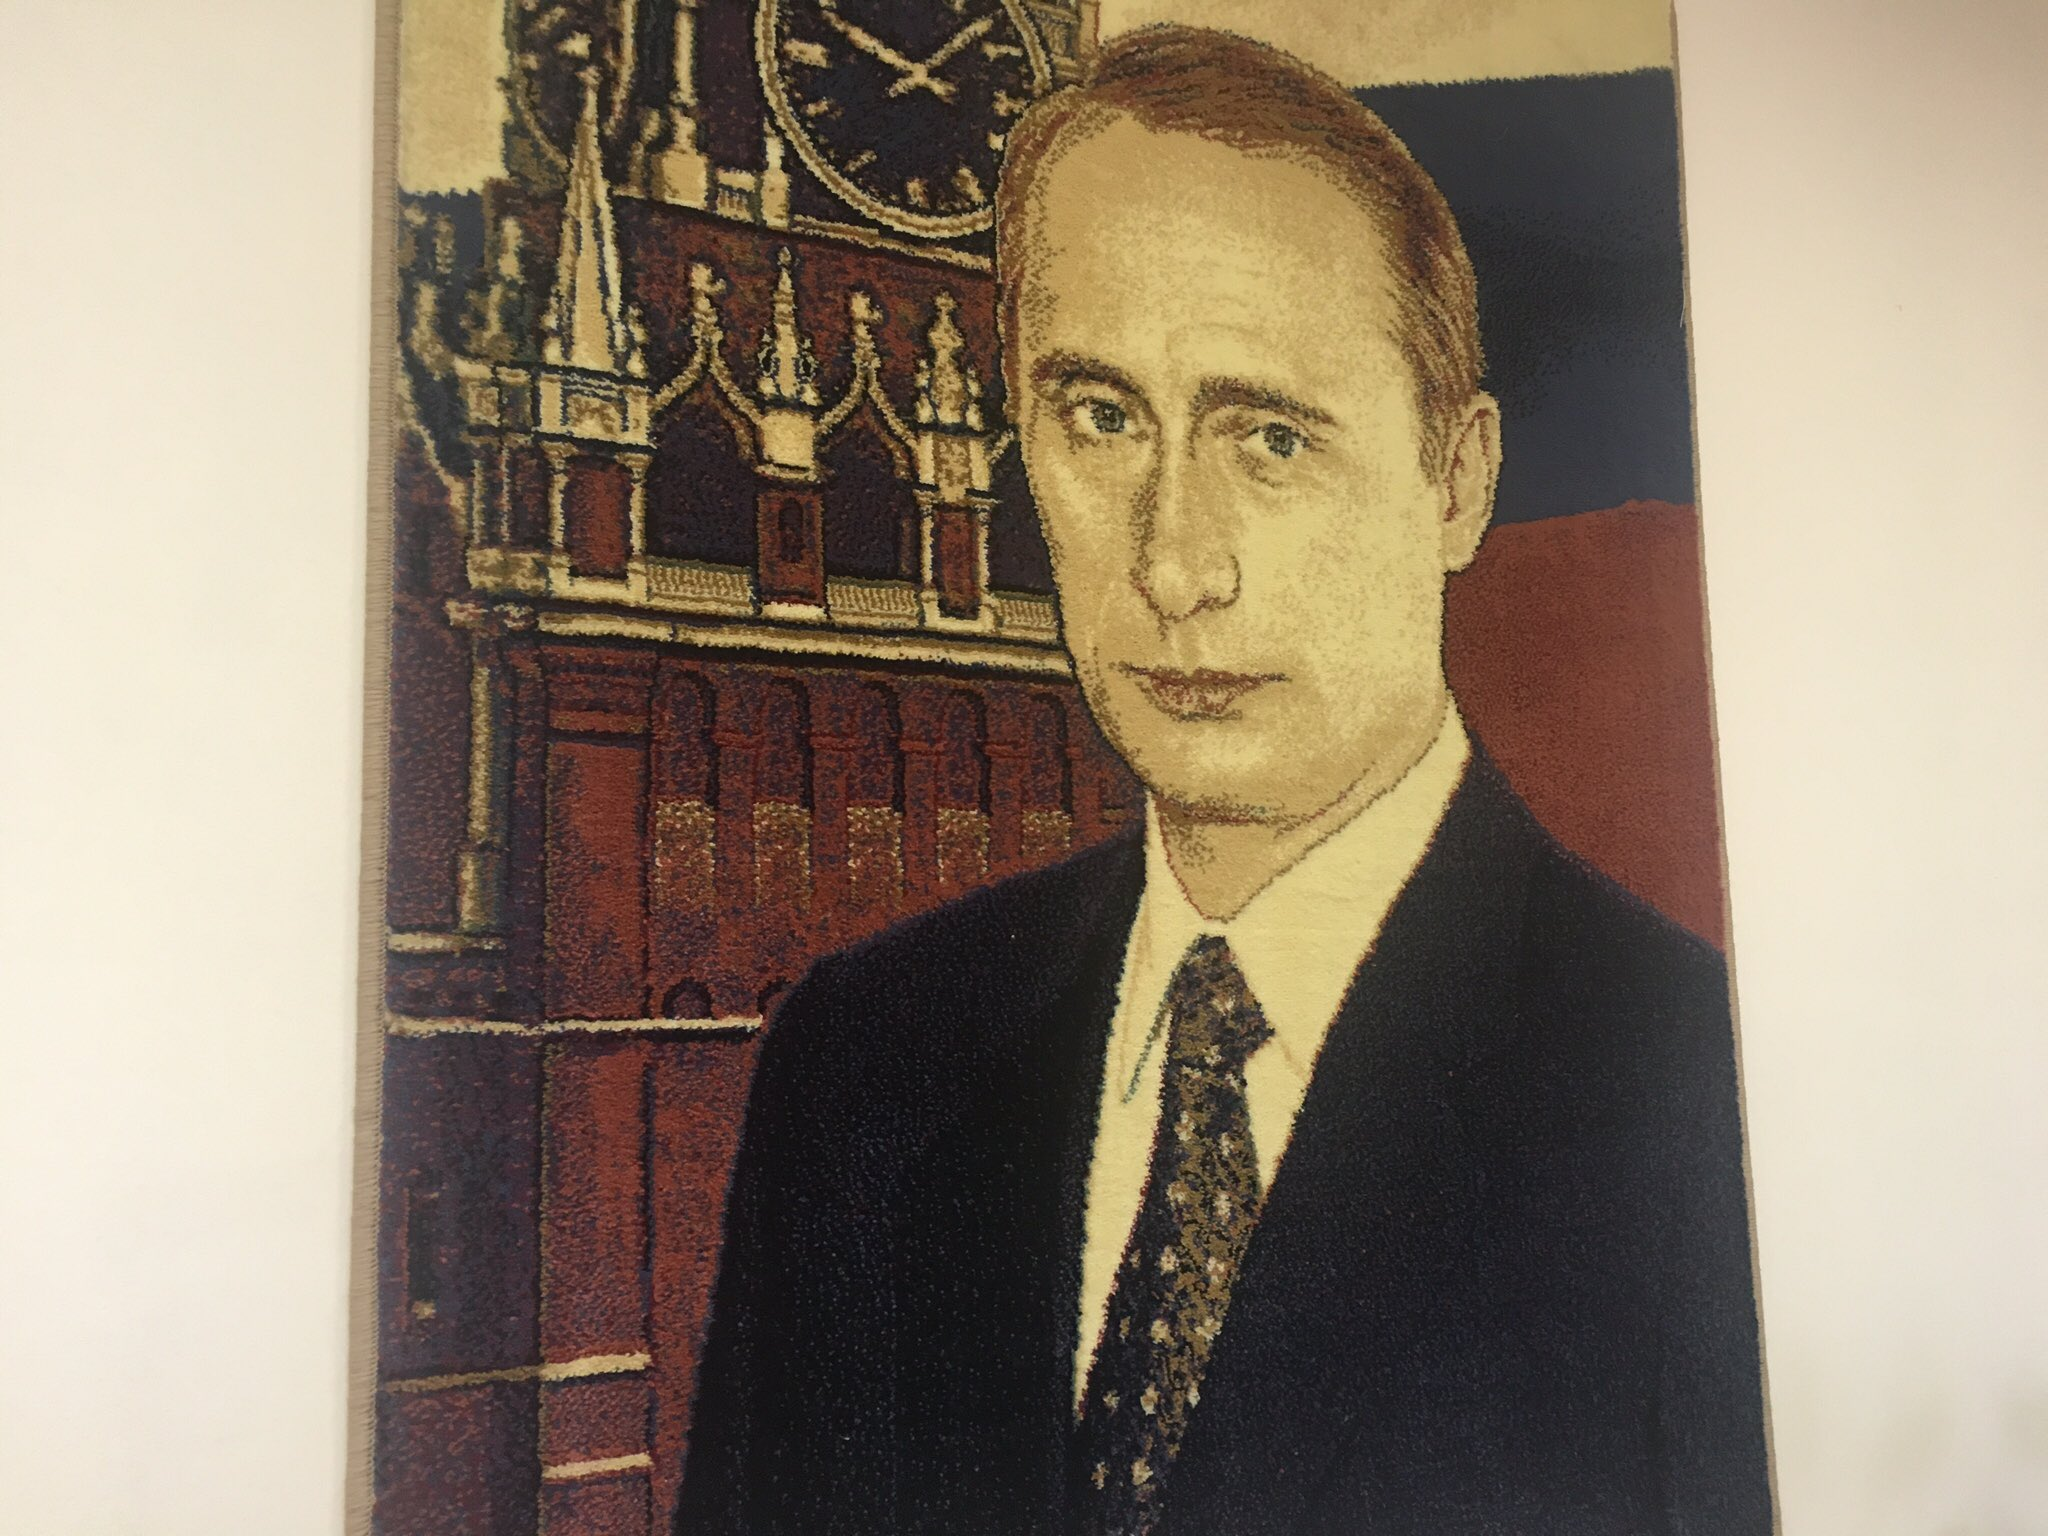 Patriotic thread. I saw this Putin carpet on the wall in an activity centre near Moscow. https://t.co/ZYJPFSYGDA